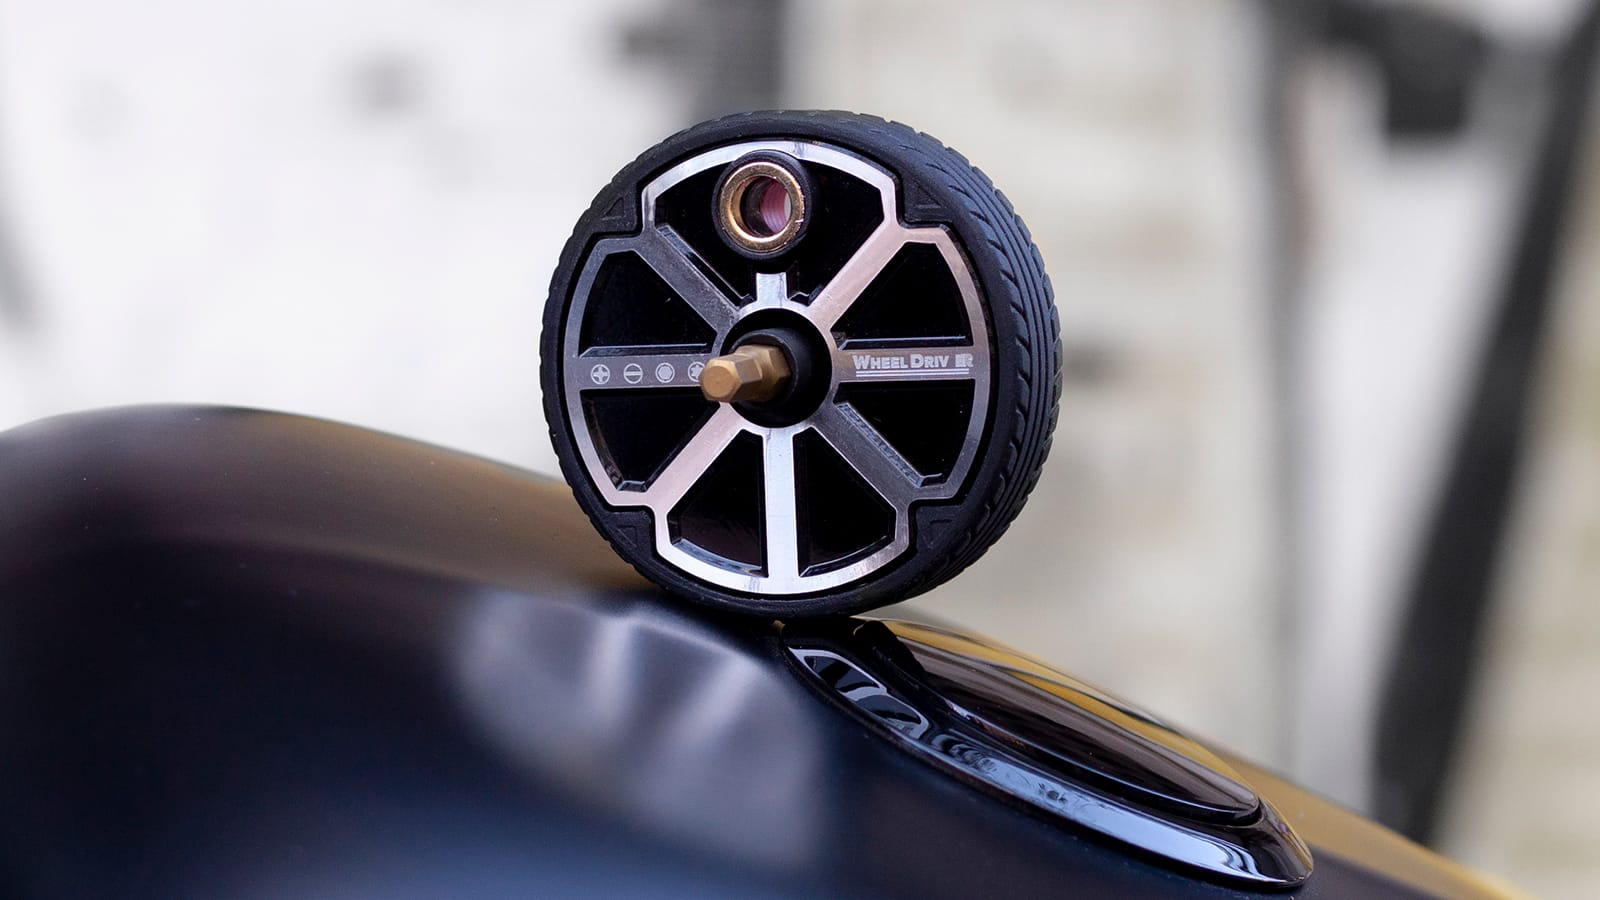 Wheel Driver luxury EDC palm ratchet reinvents the wheel to be even more useful